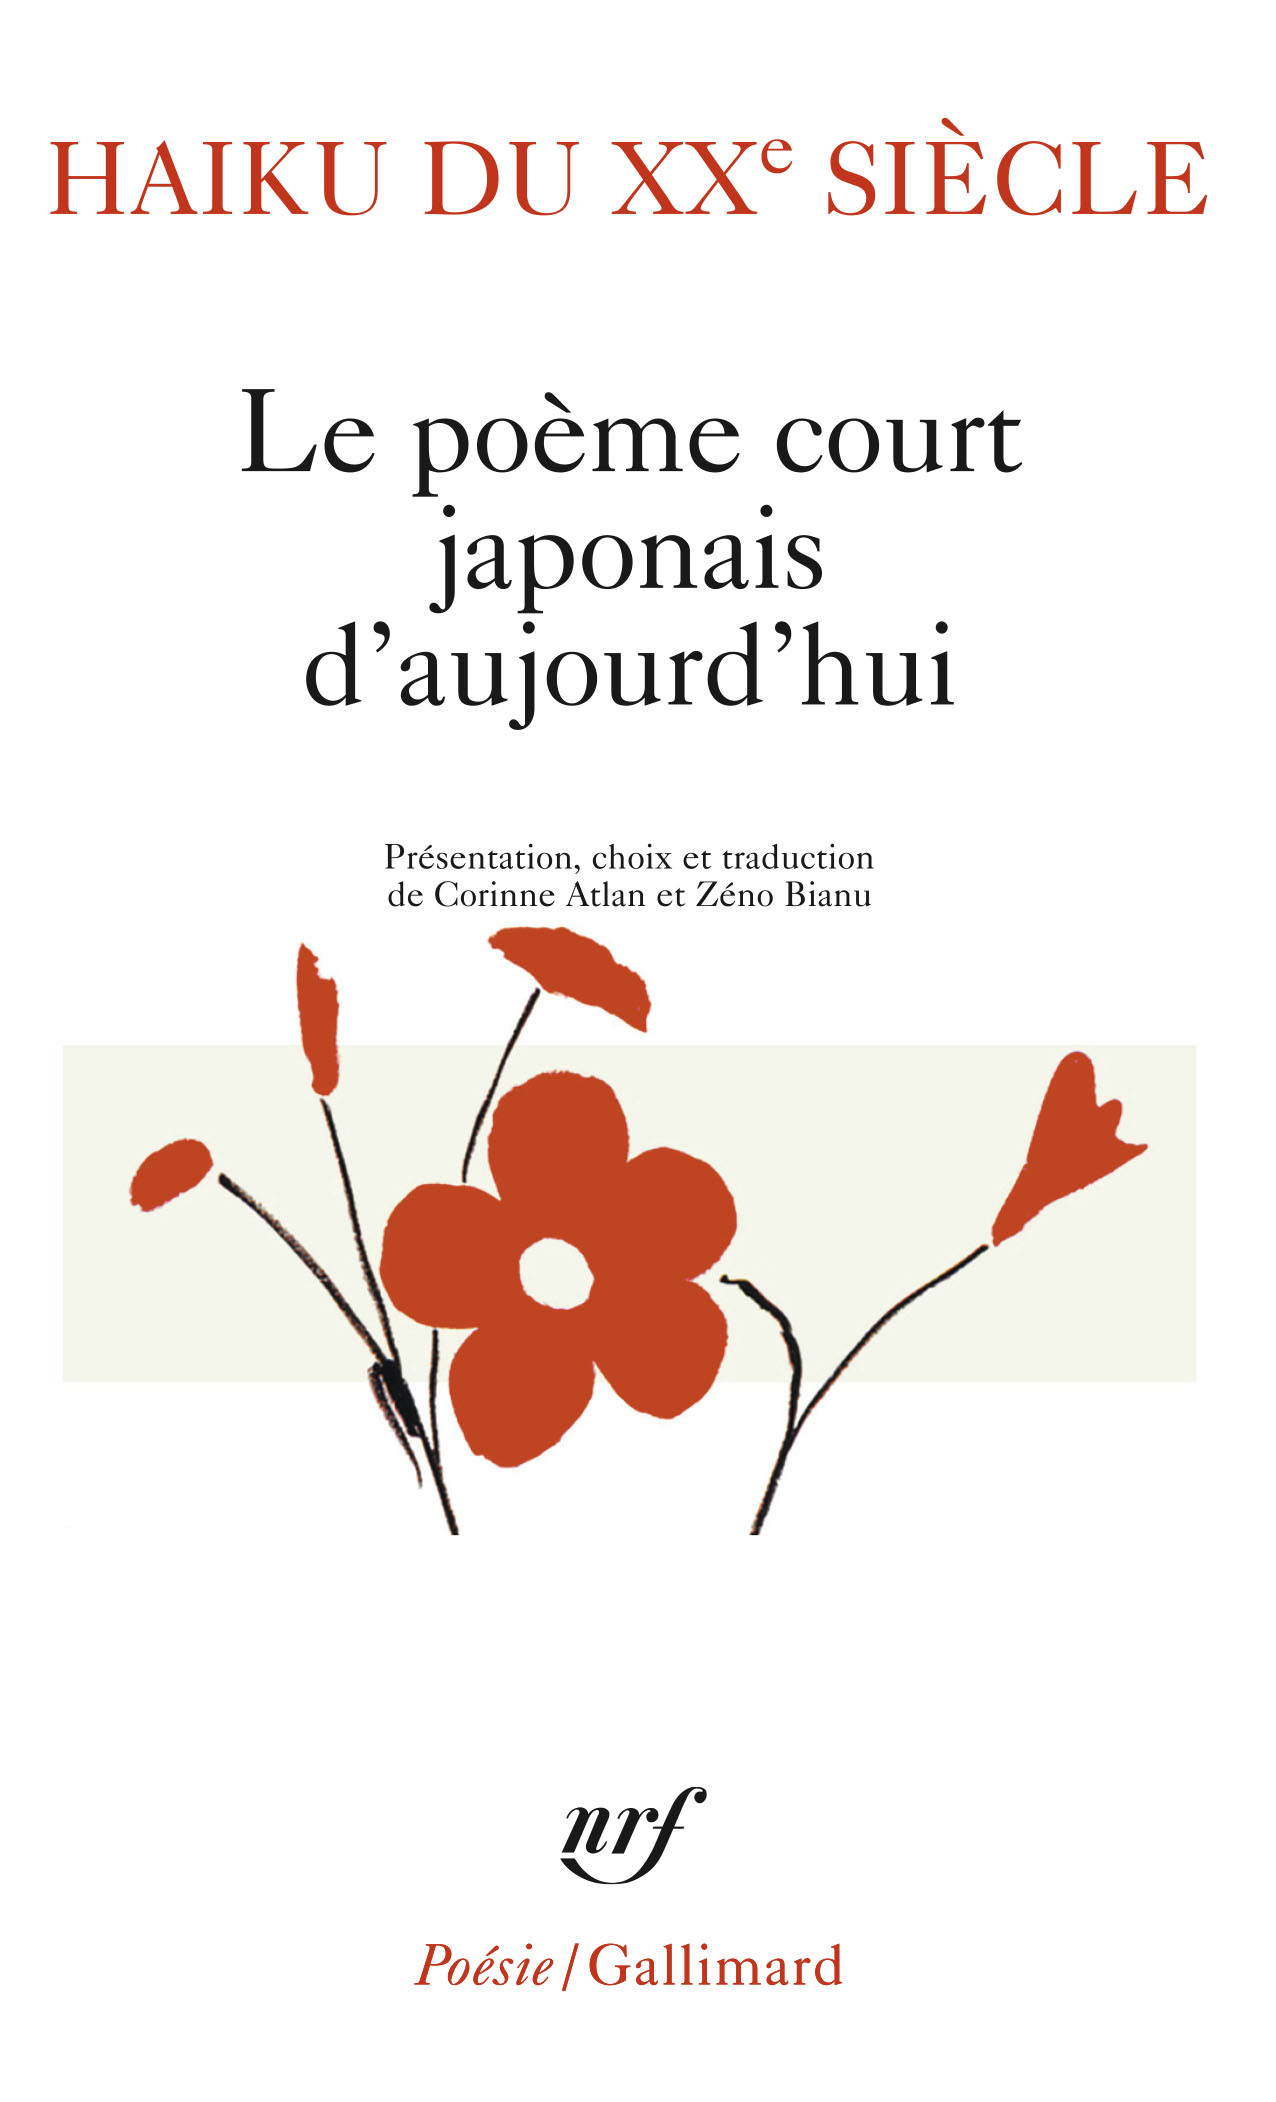 HAIKU DU XXE SIECLE